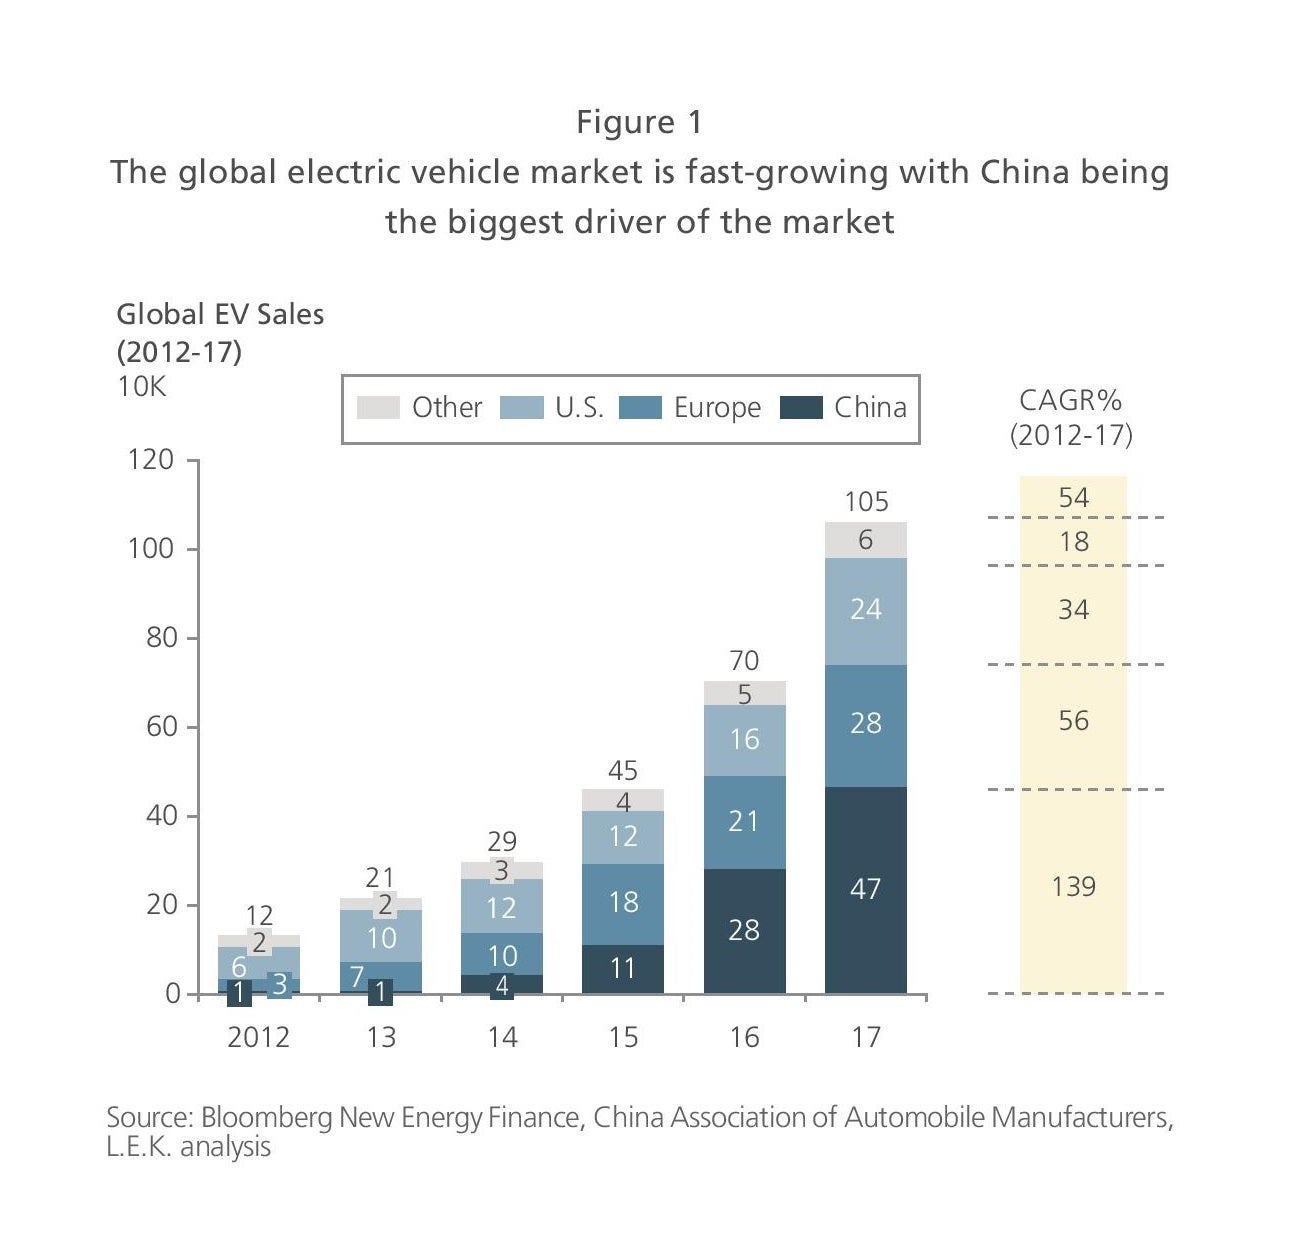 China driving EV market growth